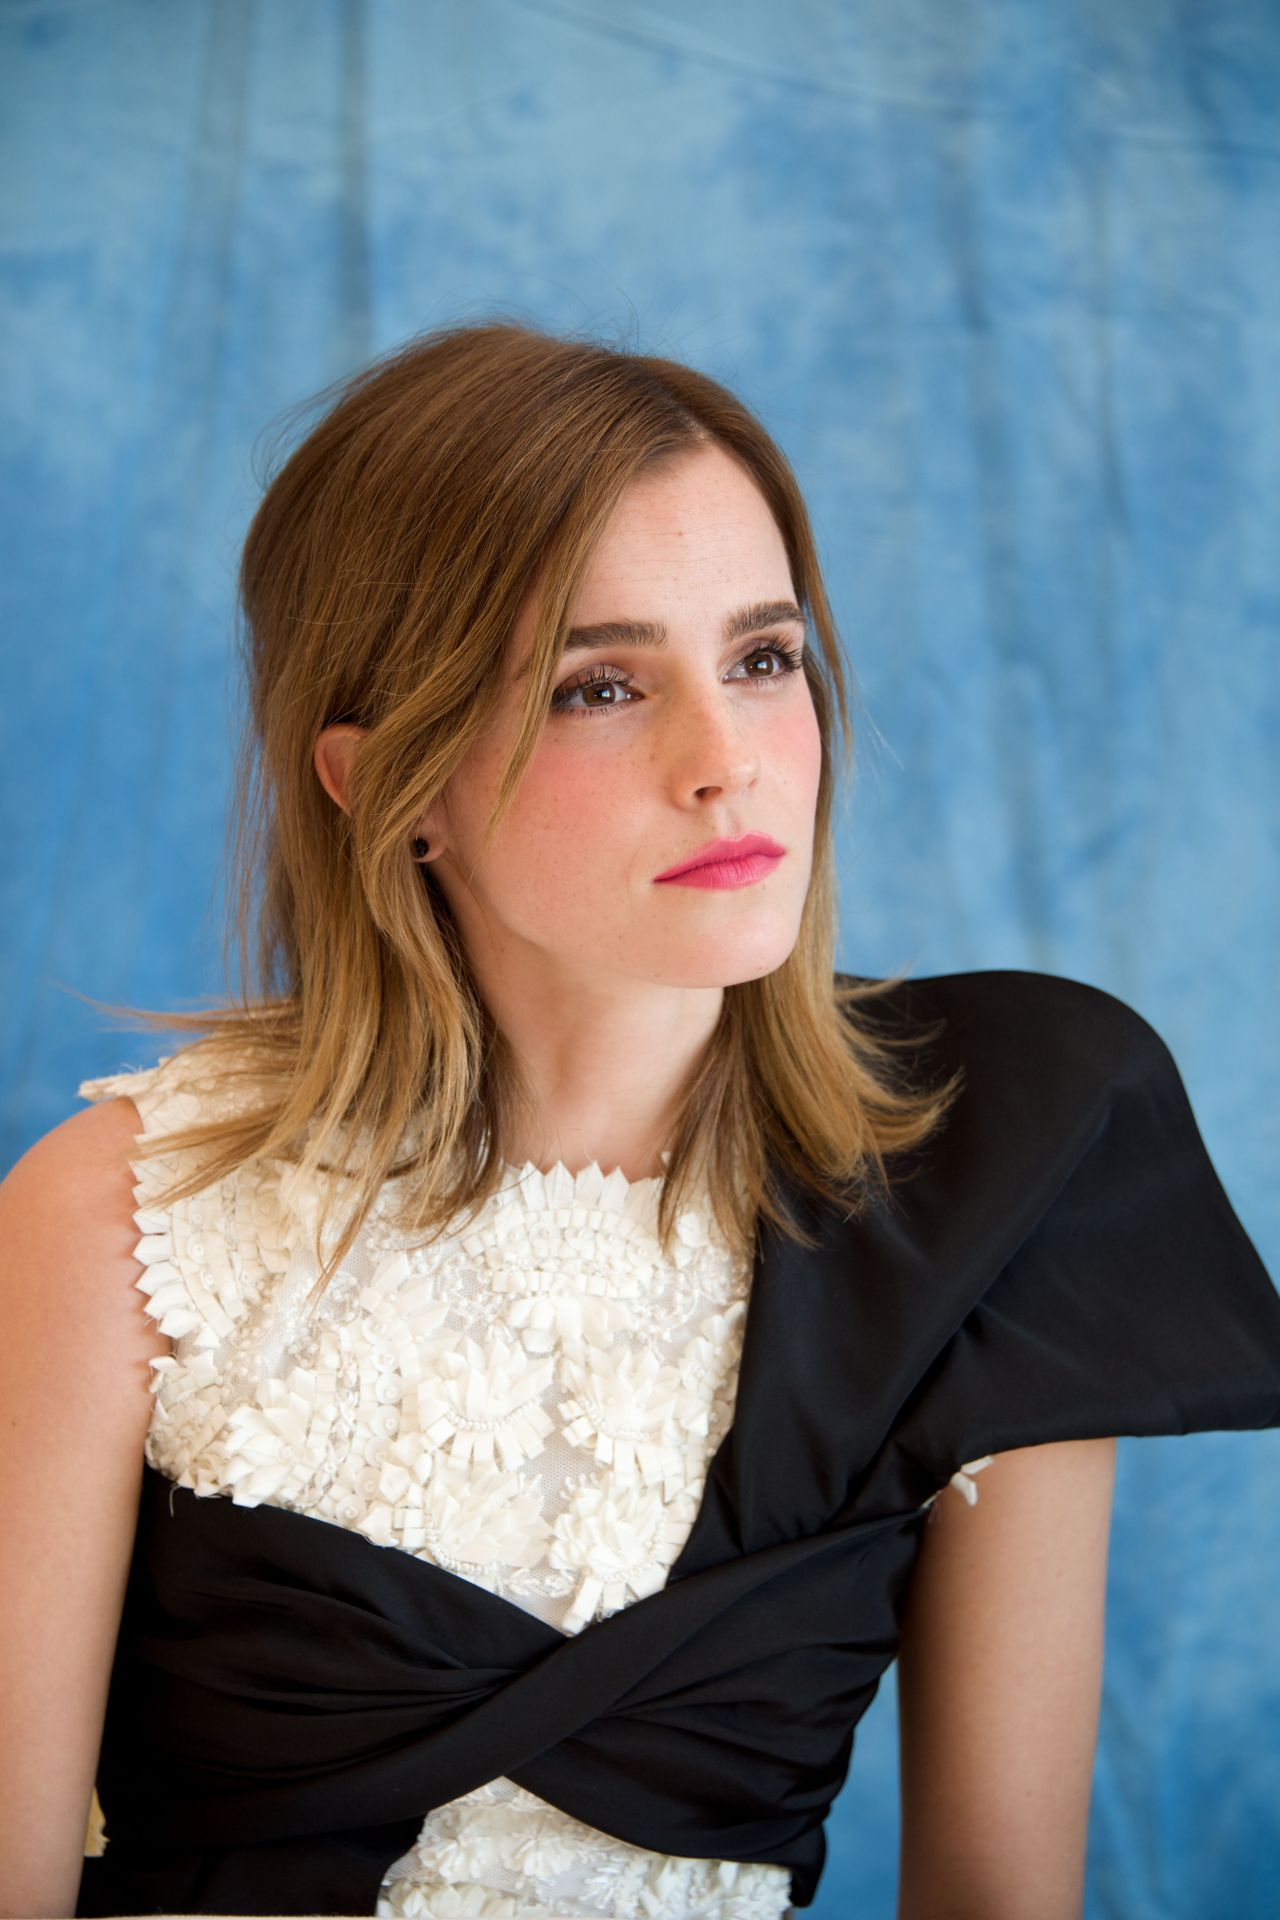 Emma Watson Beauty And The Beast Press Conference At